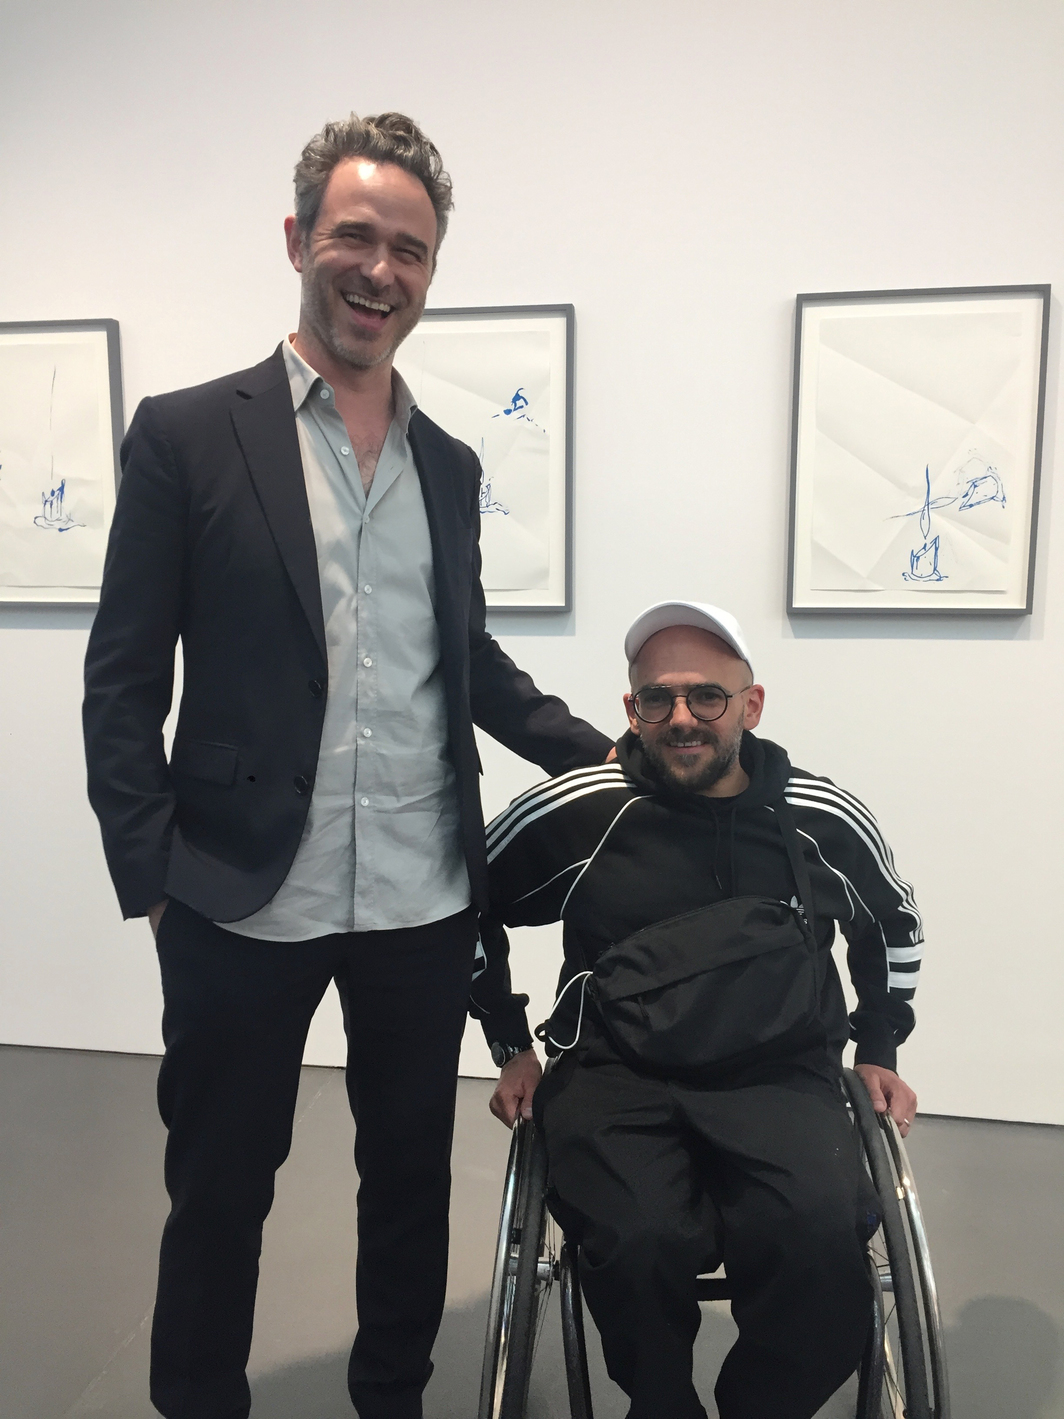 Dealer Manuel Miseur (Esther Schipper) and artist Ryan Gander.